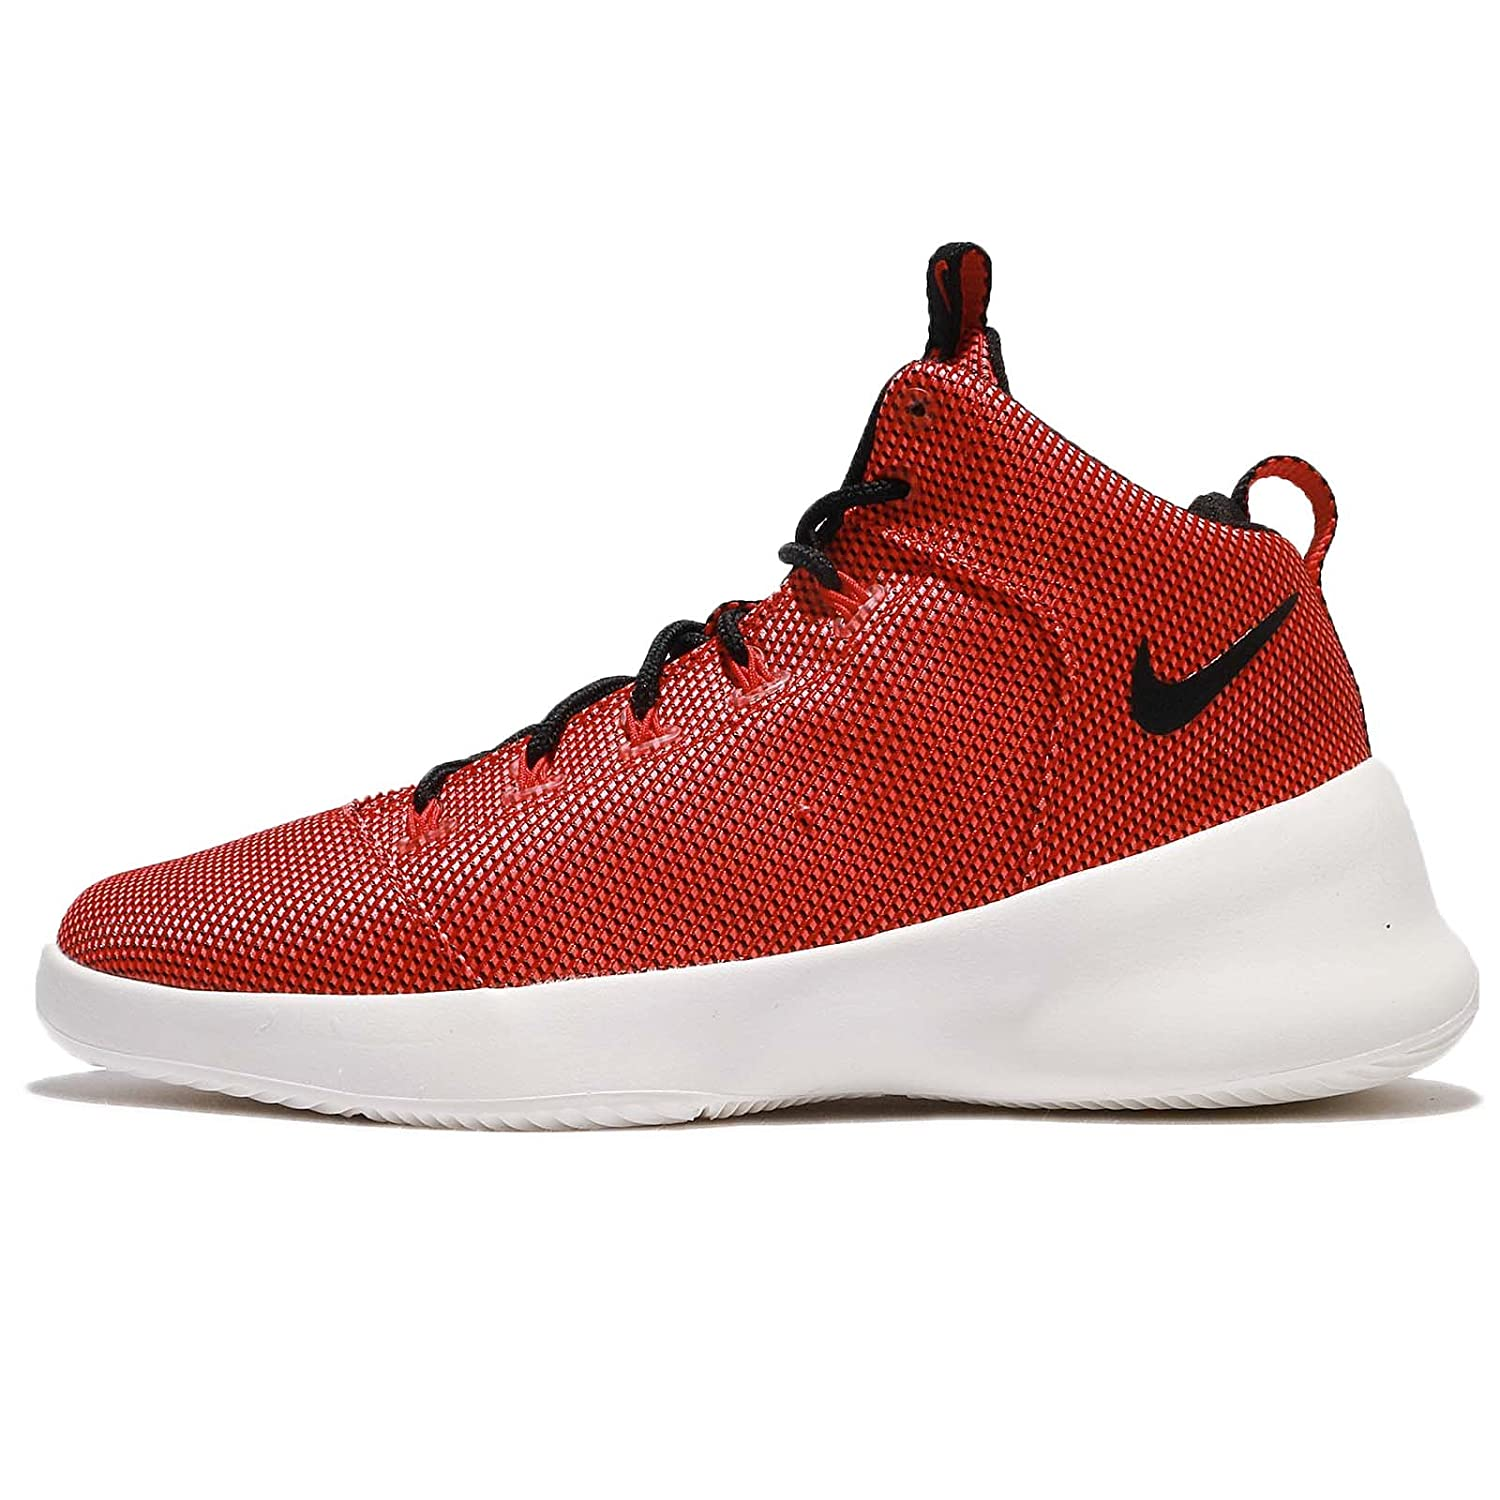 timeless design eca4f 8e842 NIKE Men s Hyperfr3sh, University Red Black-Sail, 12 M US  Amazon.co.uk   Shoes   Bags